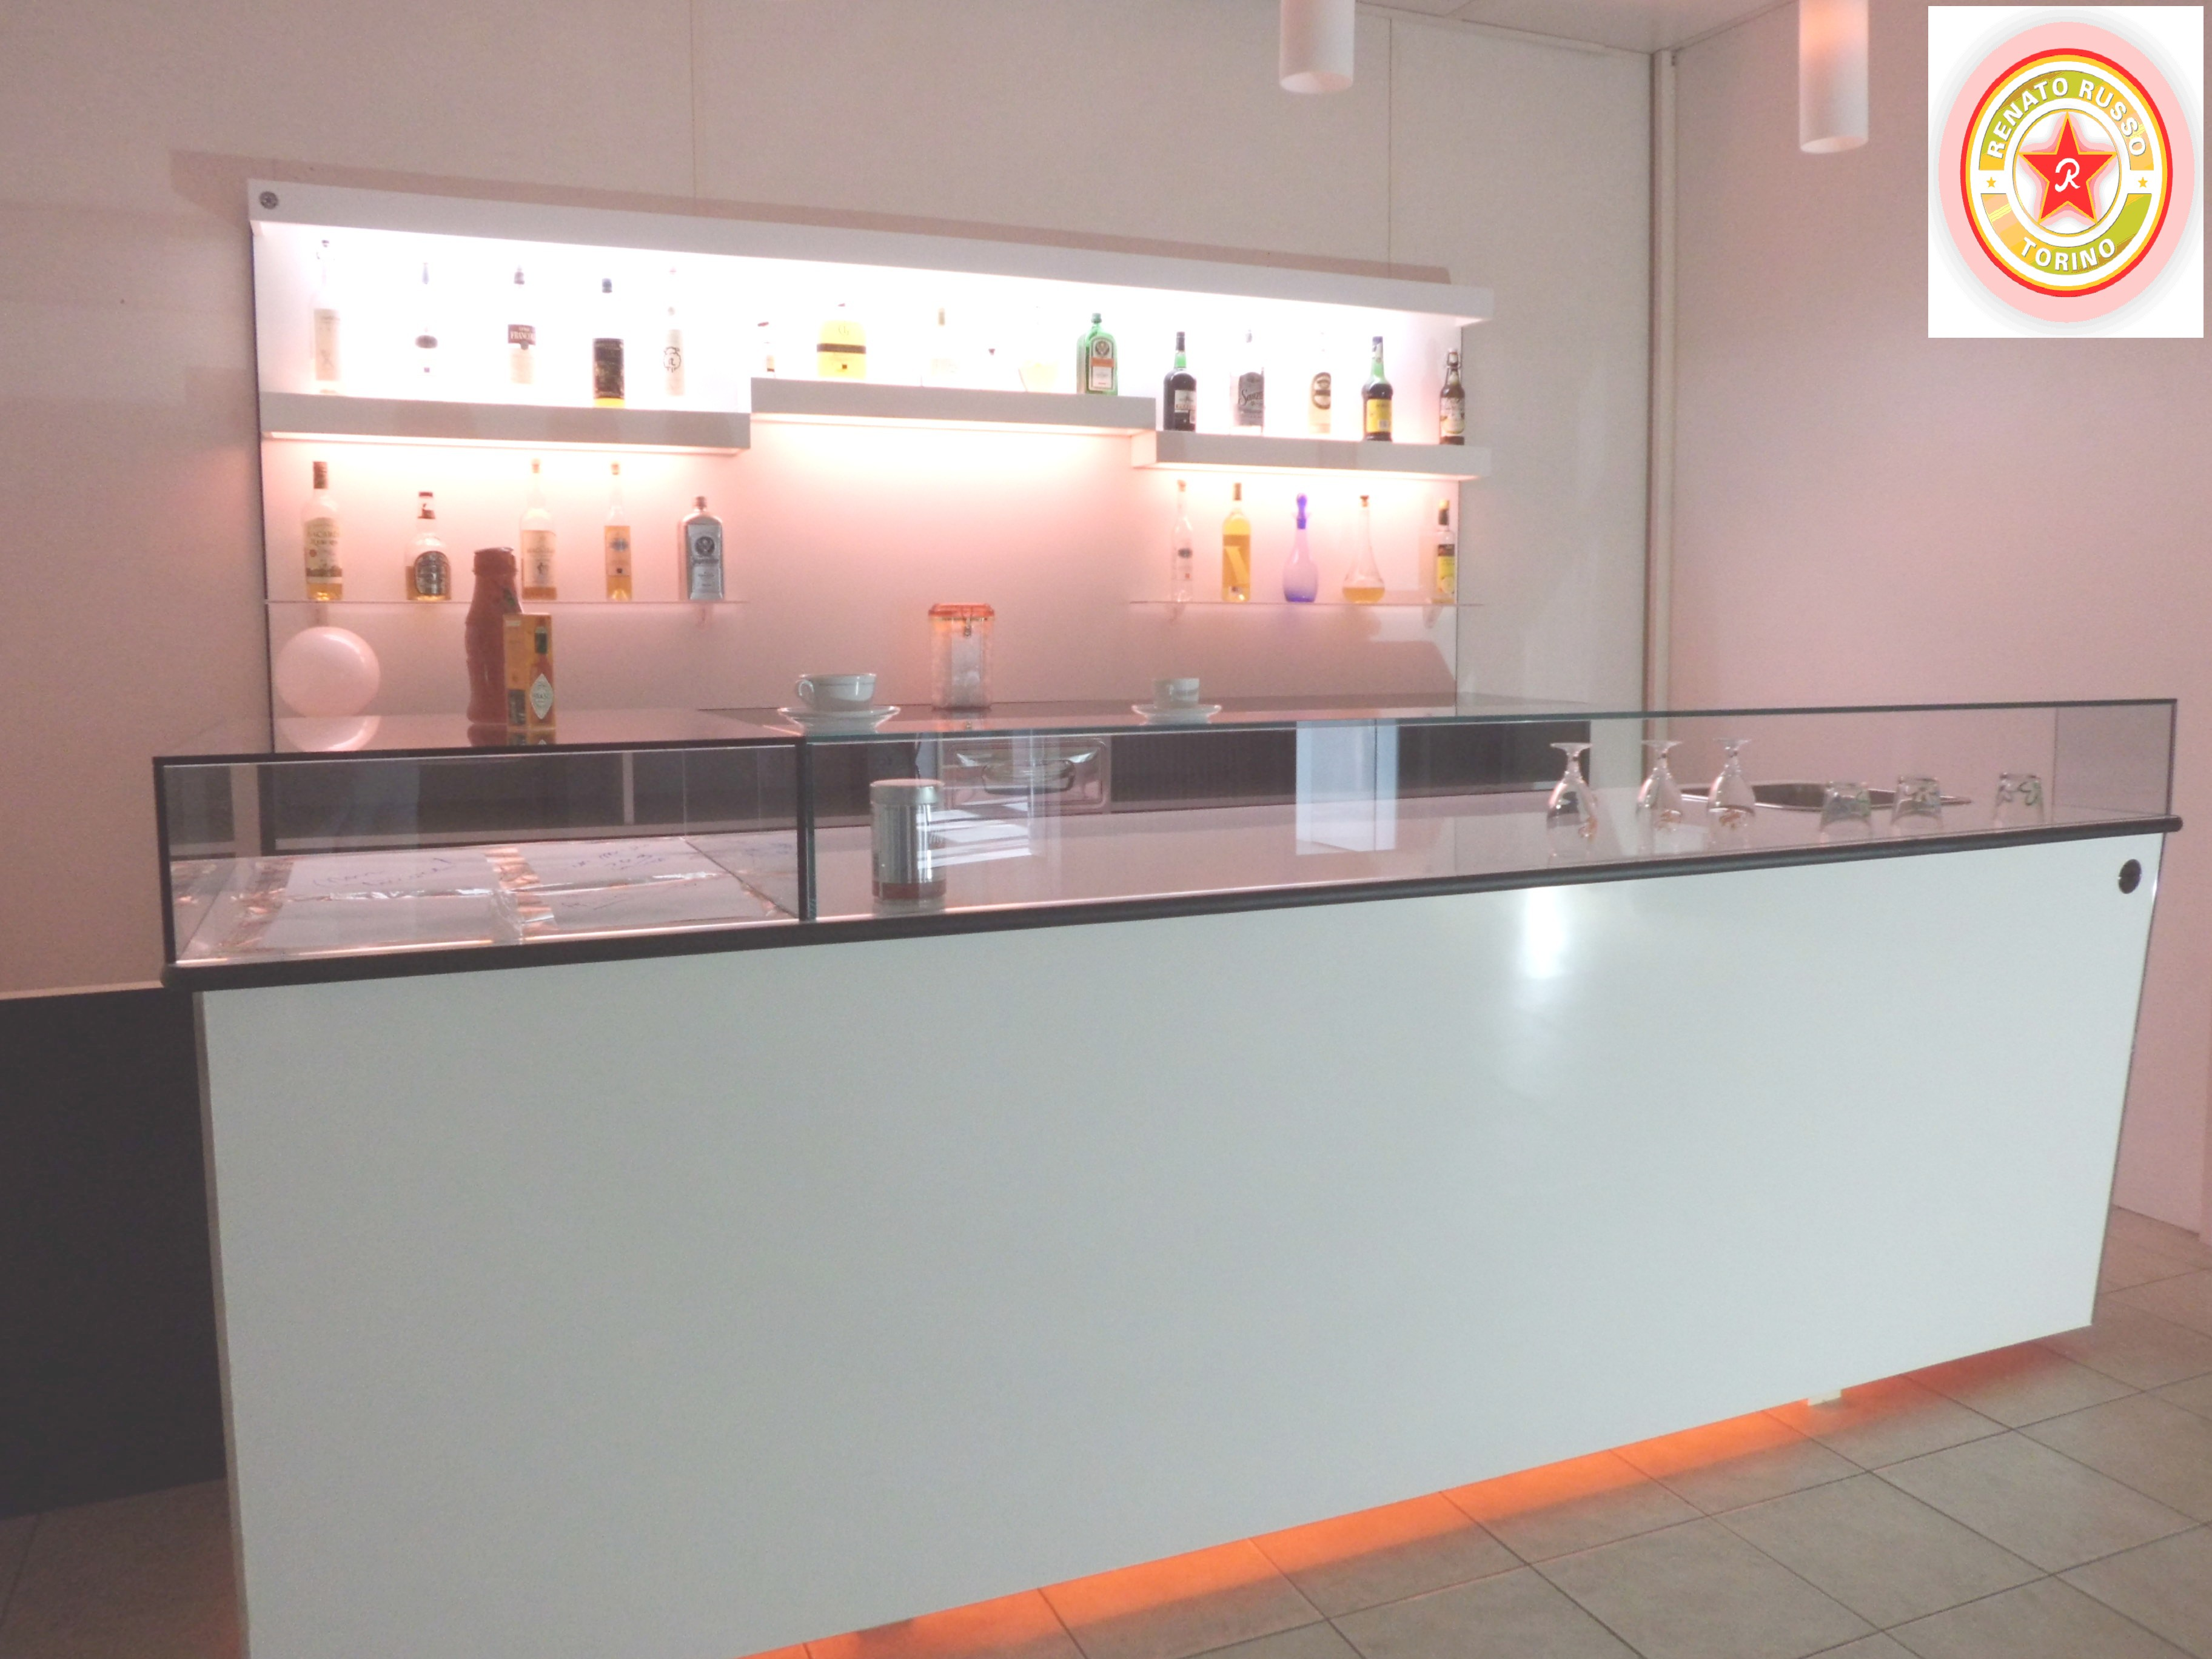 Banchi bar prezzi banchi bar banconi bar banchi frigo for Crystal bar milano